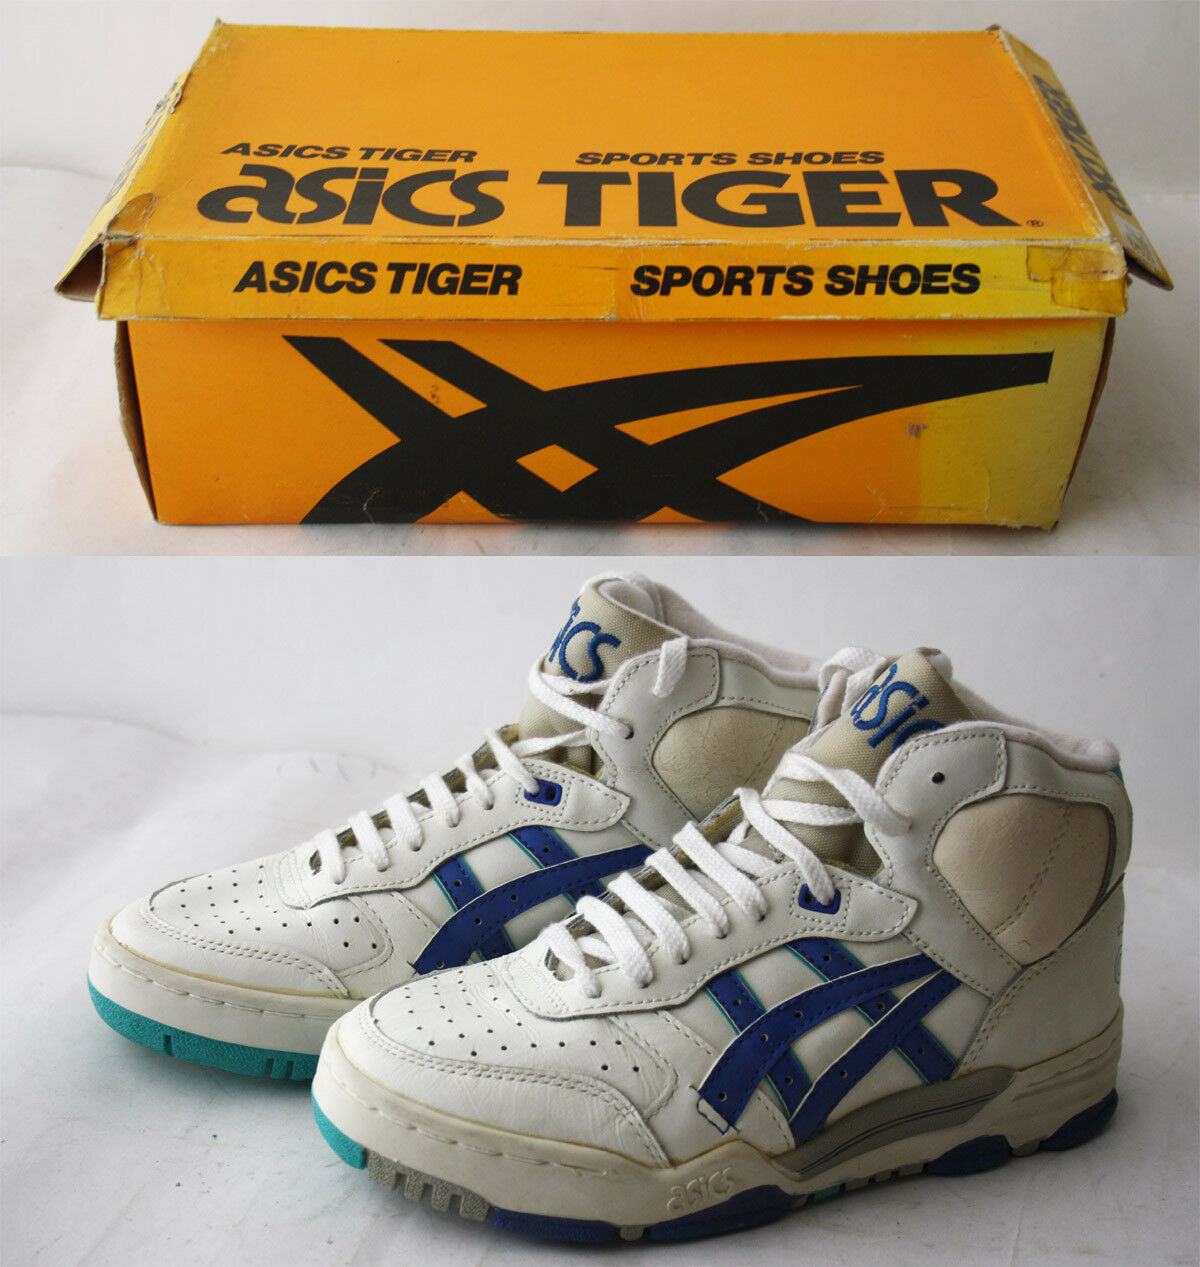 RARE VINTAGE 80'S ASICS TIGER SPORTS Schuhe HIGH TOP EUR 38-39 US 5.5 NEW NOS